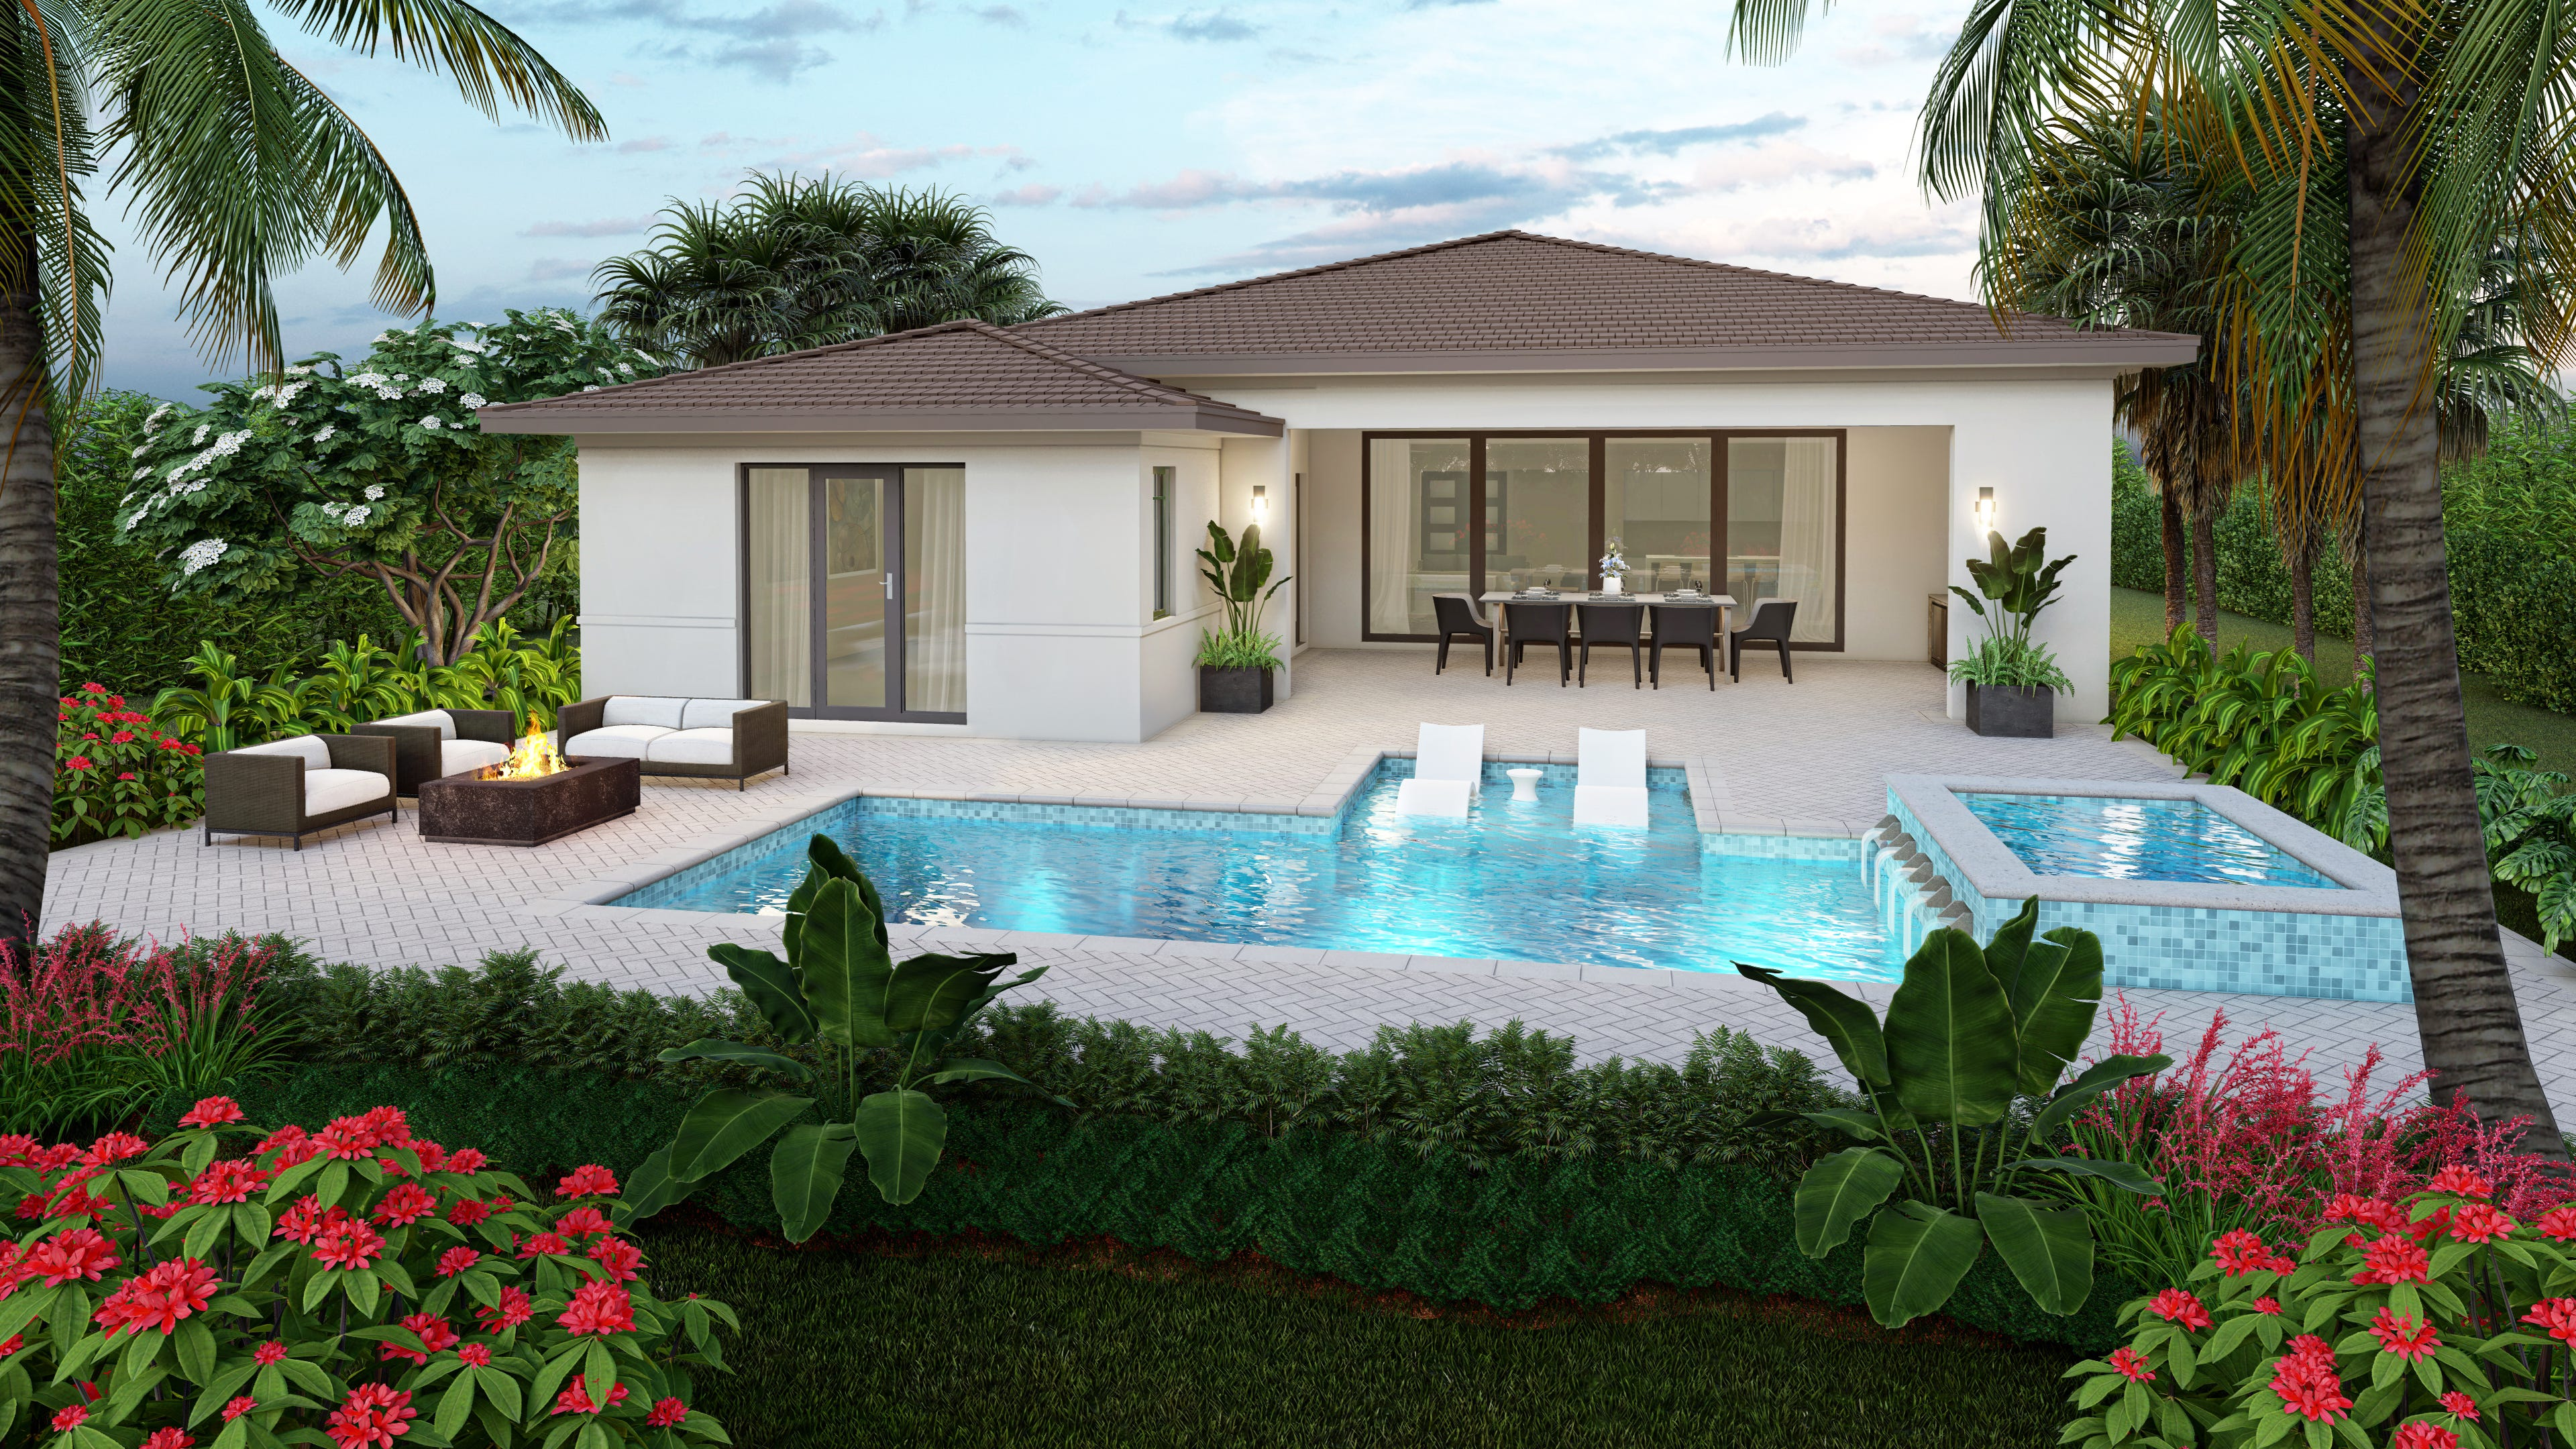 Home Designs From High 800s Homesites From Mid 200s Available At Mediterra